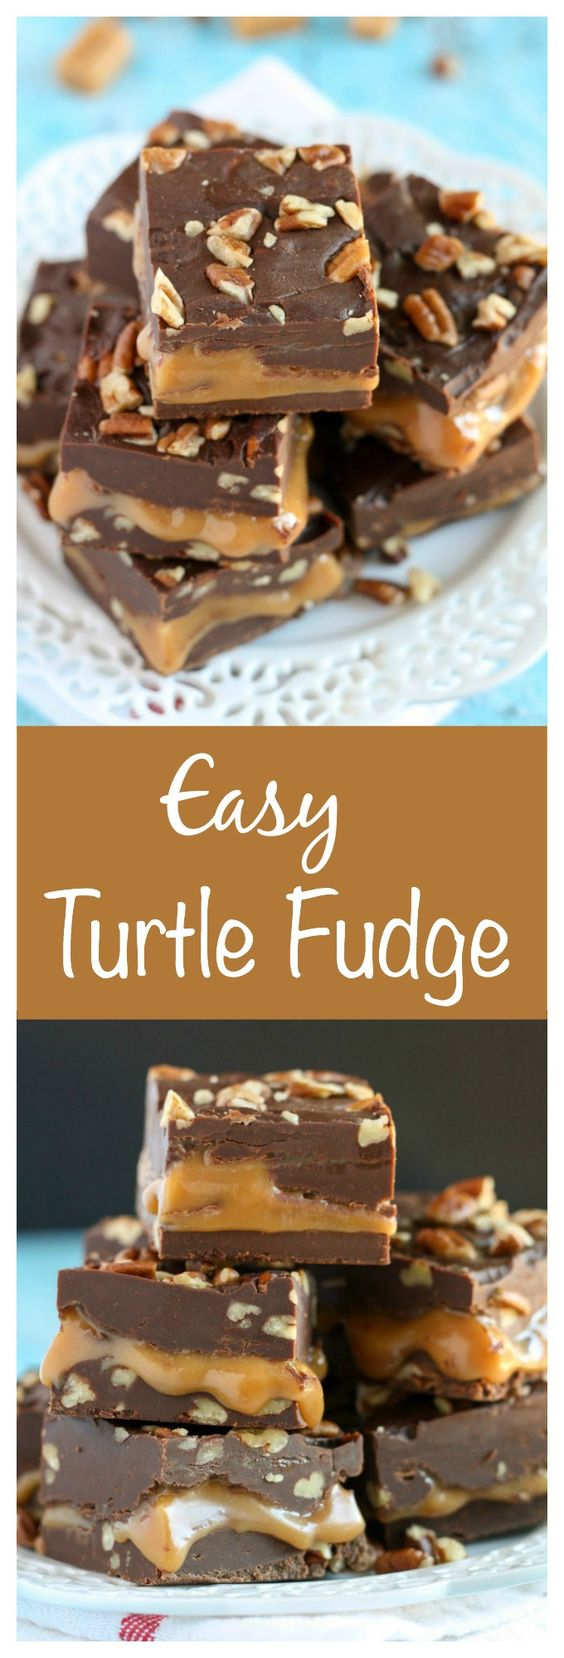 An easy chocolate fudge recipe with a caramel center and chopped pecans. Everyone will love this Turtle Fudge!